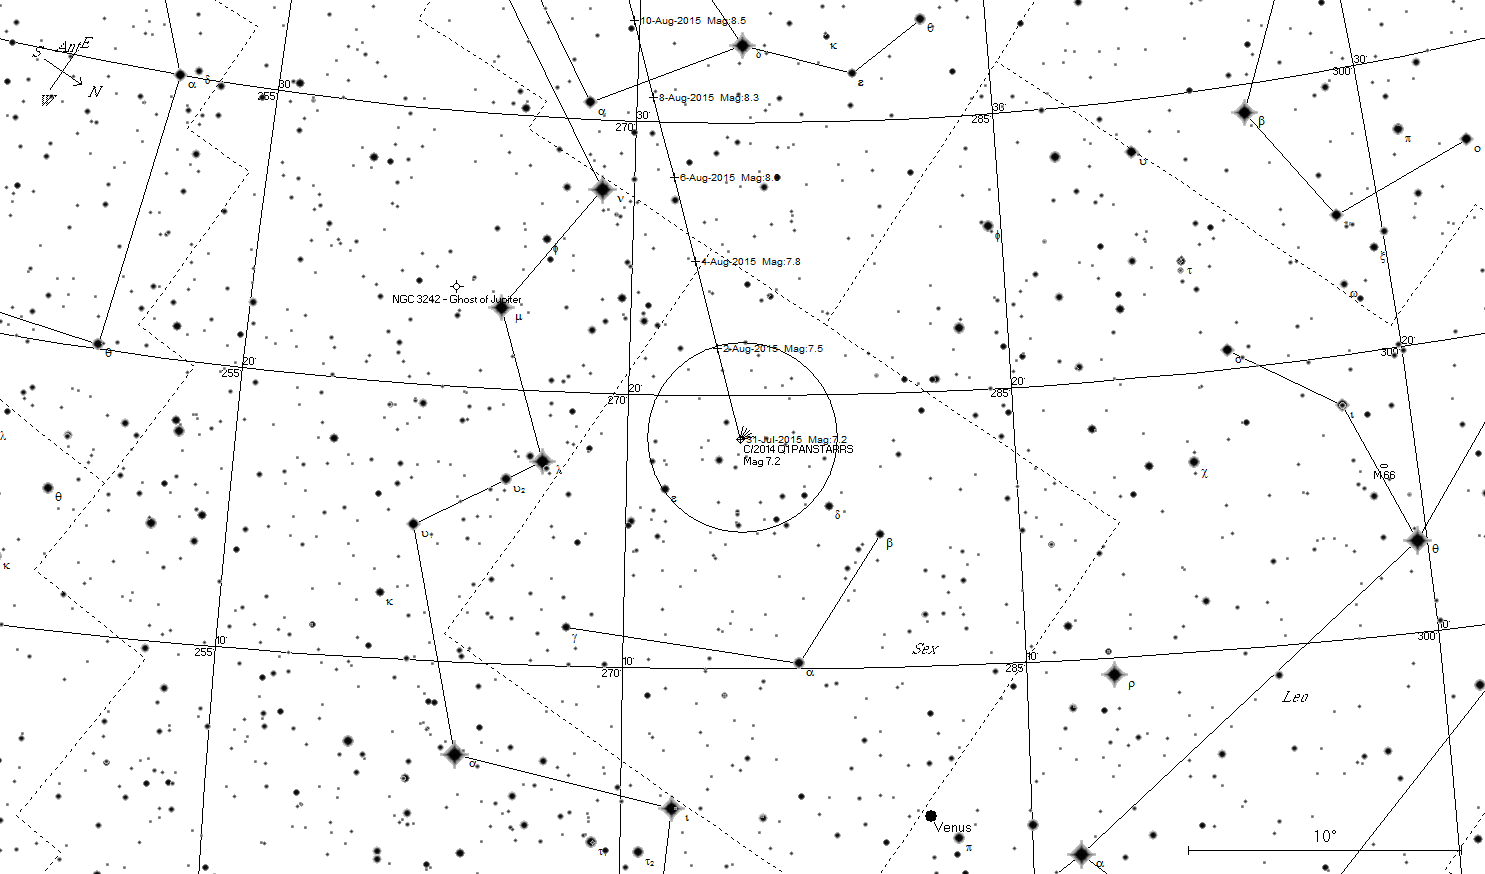 Printable black and white map suitable for use with binoculars the circle is the field of view of 10x50 binoculars the time is 19 00 acst similar views